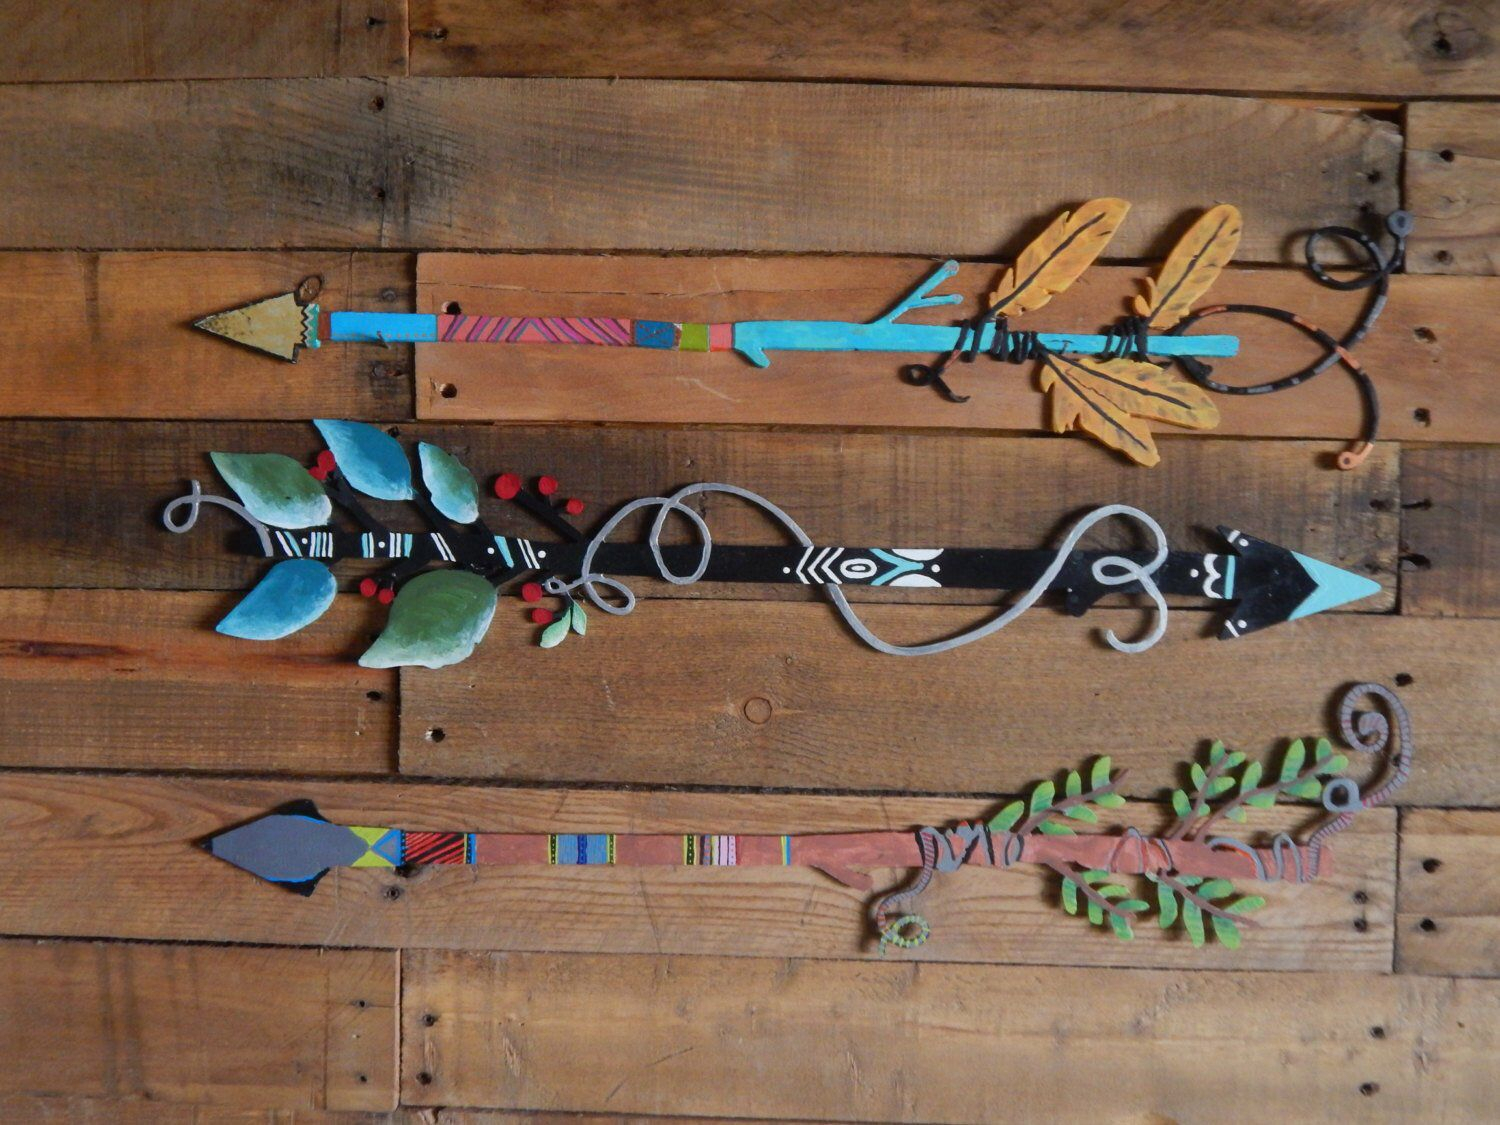 Western Metal Wall Art – Boho Decor – Hand Painted Arrows Intended For Brown Metal Tribal Arrow Wall Decor (View 19 of 30)